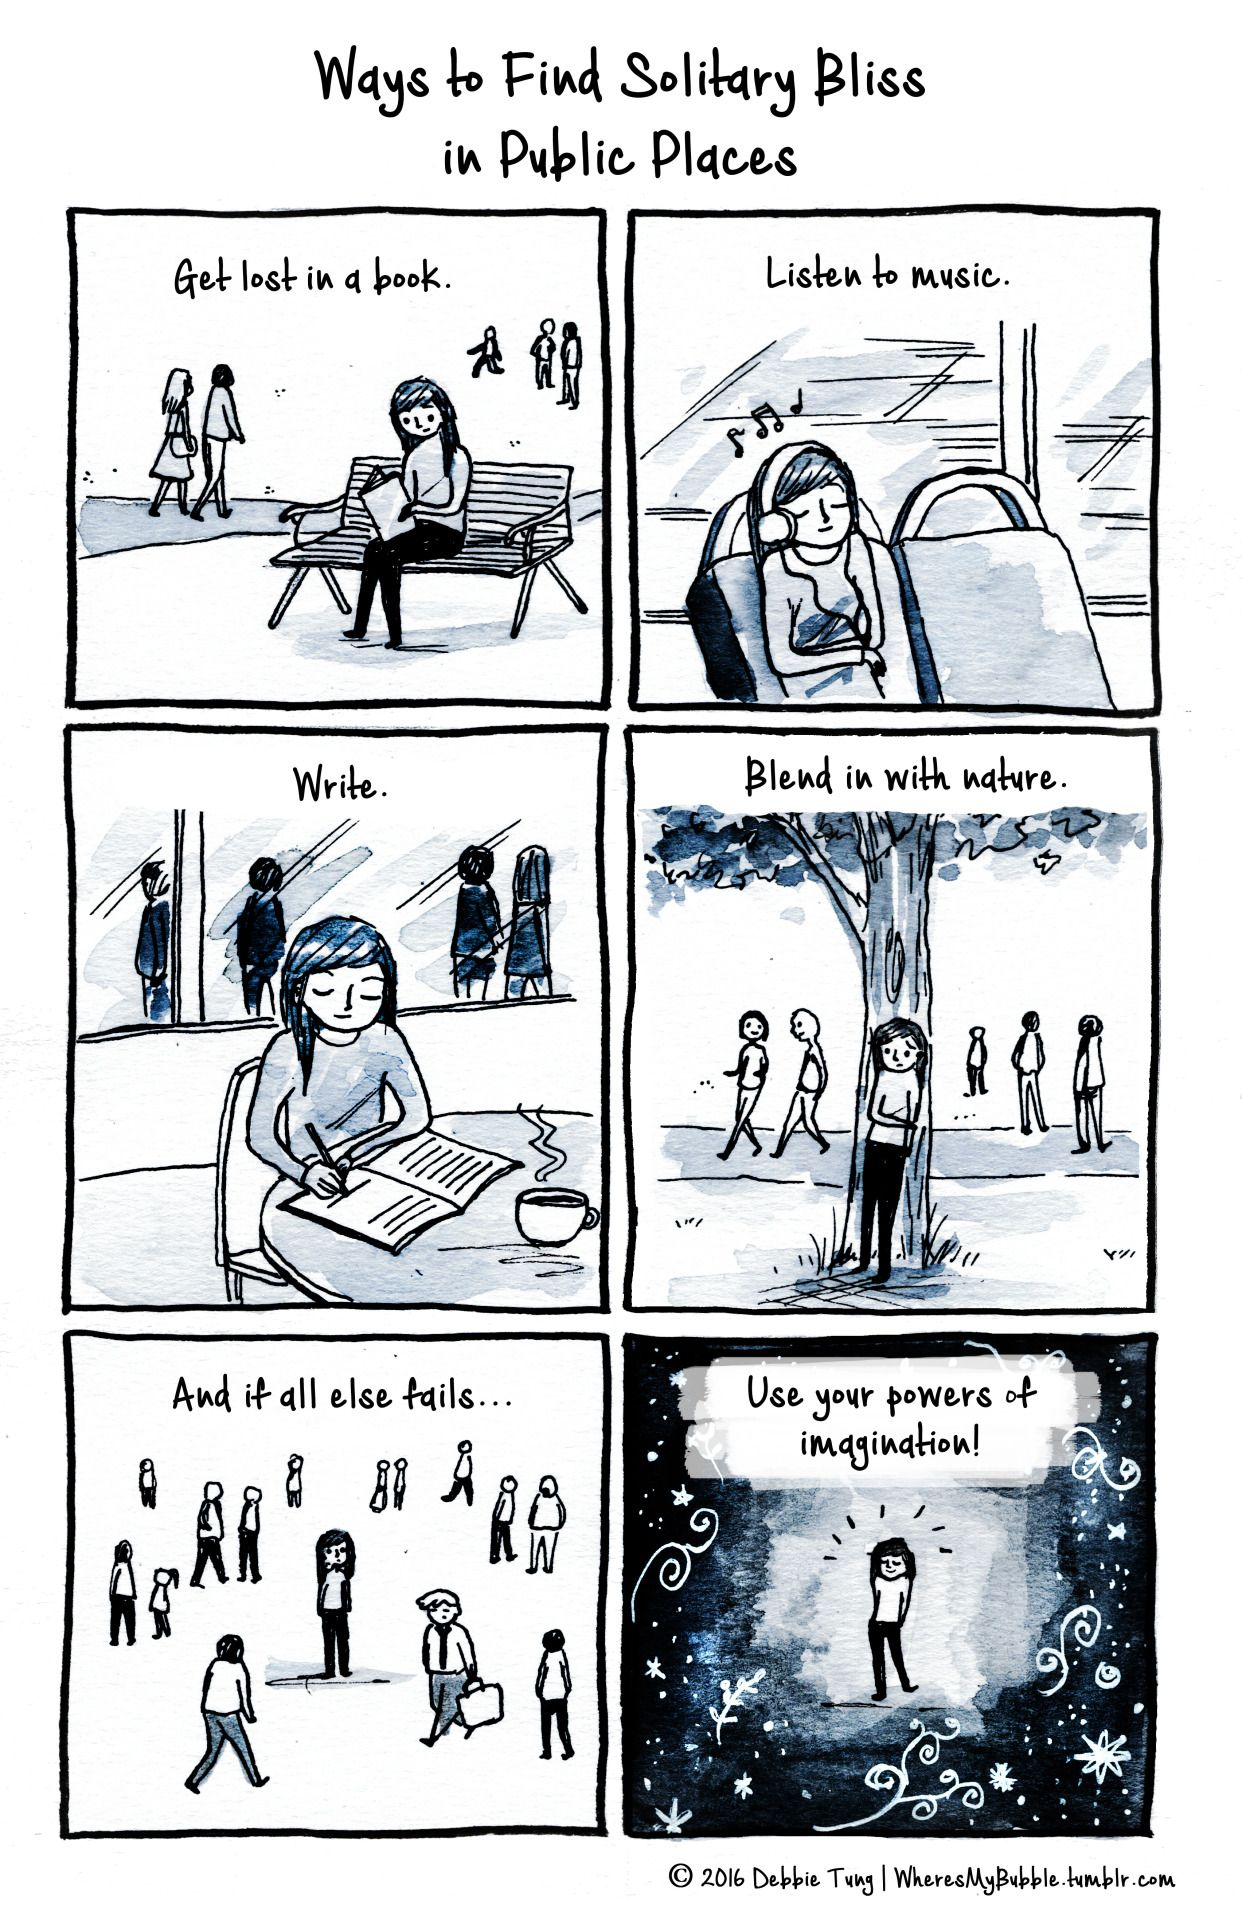 Some ways to find solitude in public places for introverts.